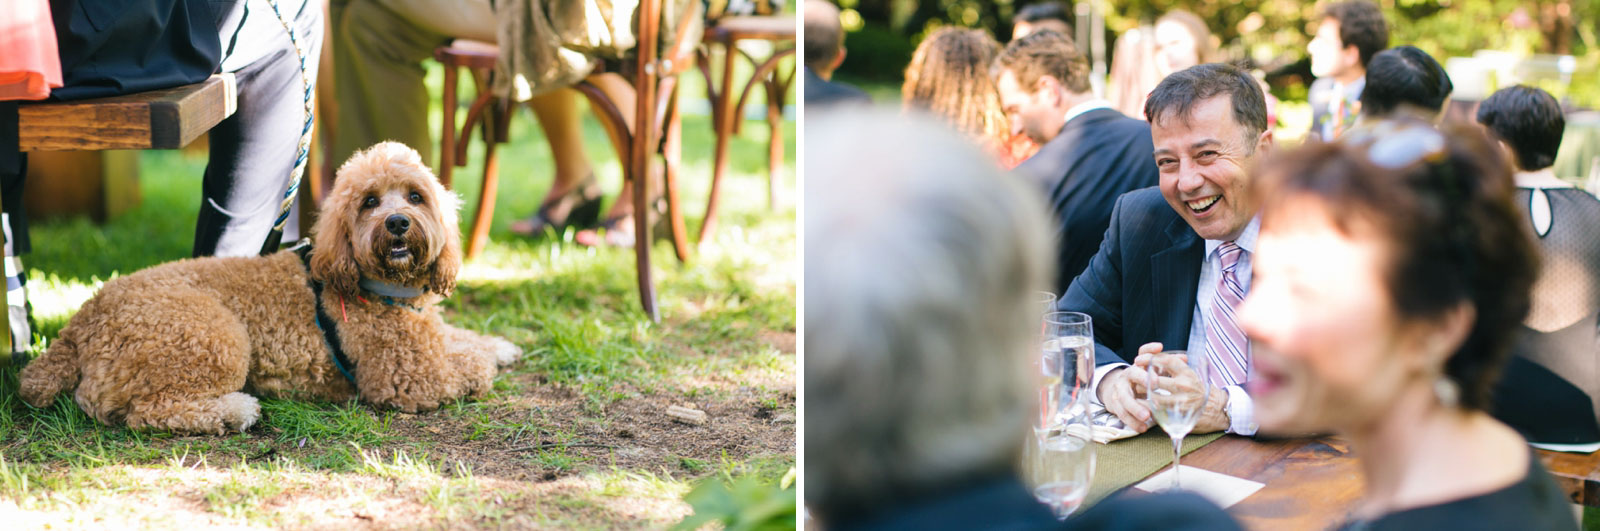 candids of guests at outdoor wedding reception at dog-friendly wedding venue in Boston